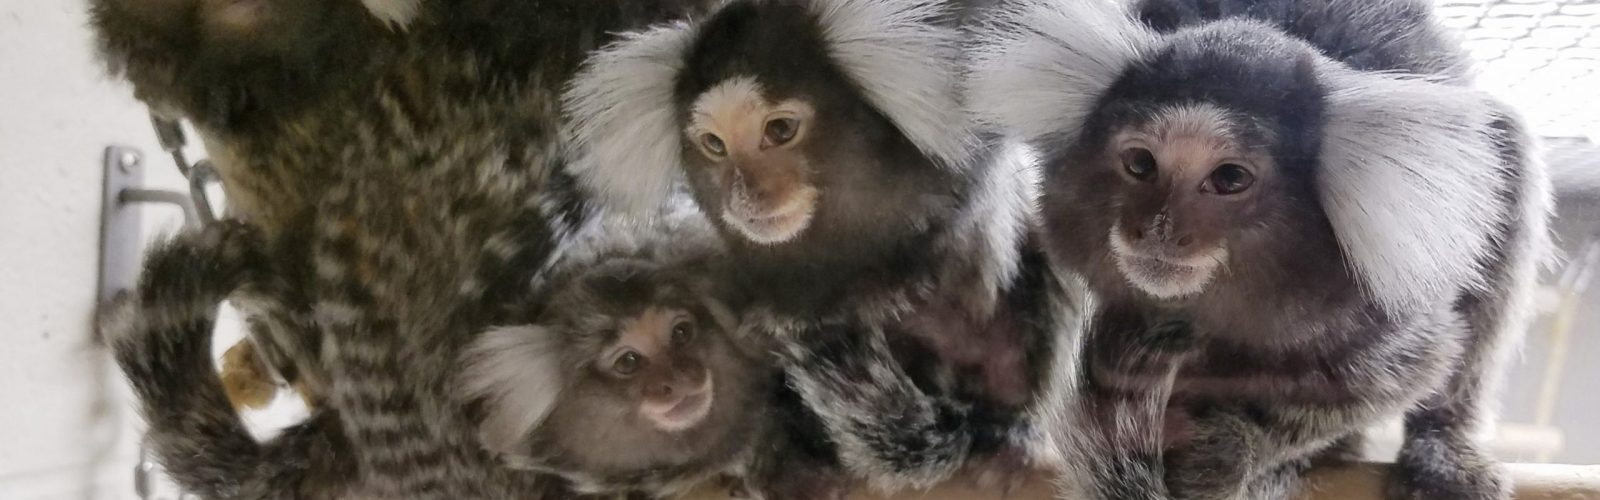 A family of marmosets in the WNPRC lobby vivarium (J. Lenon photo).